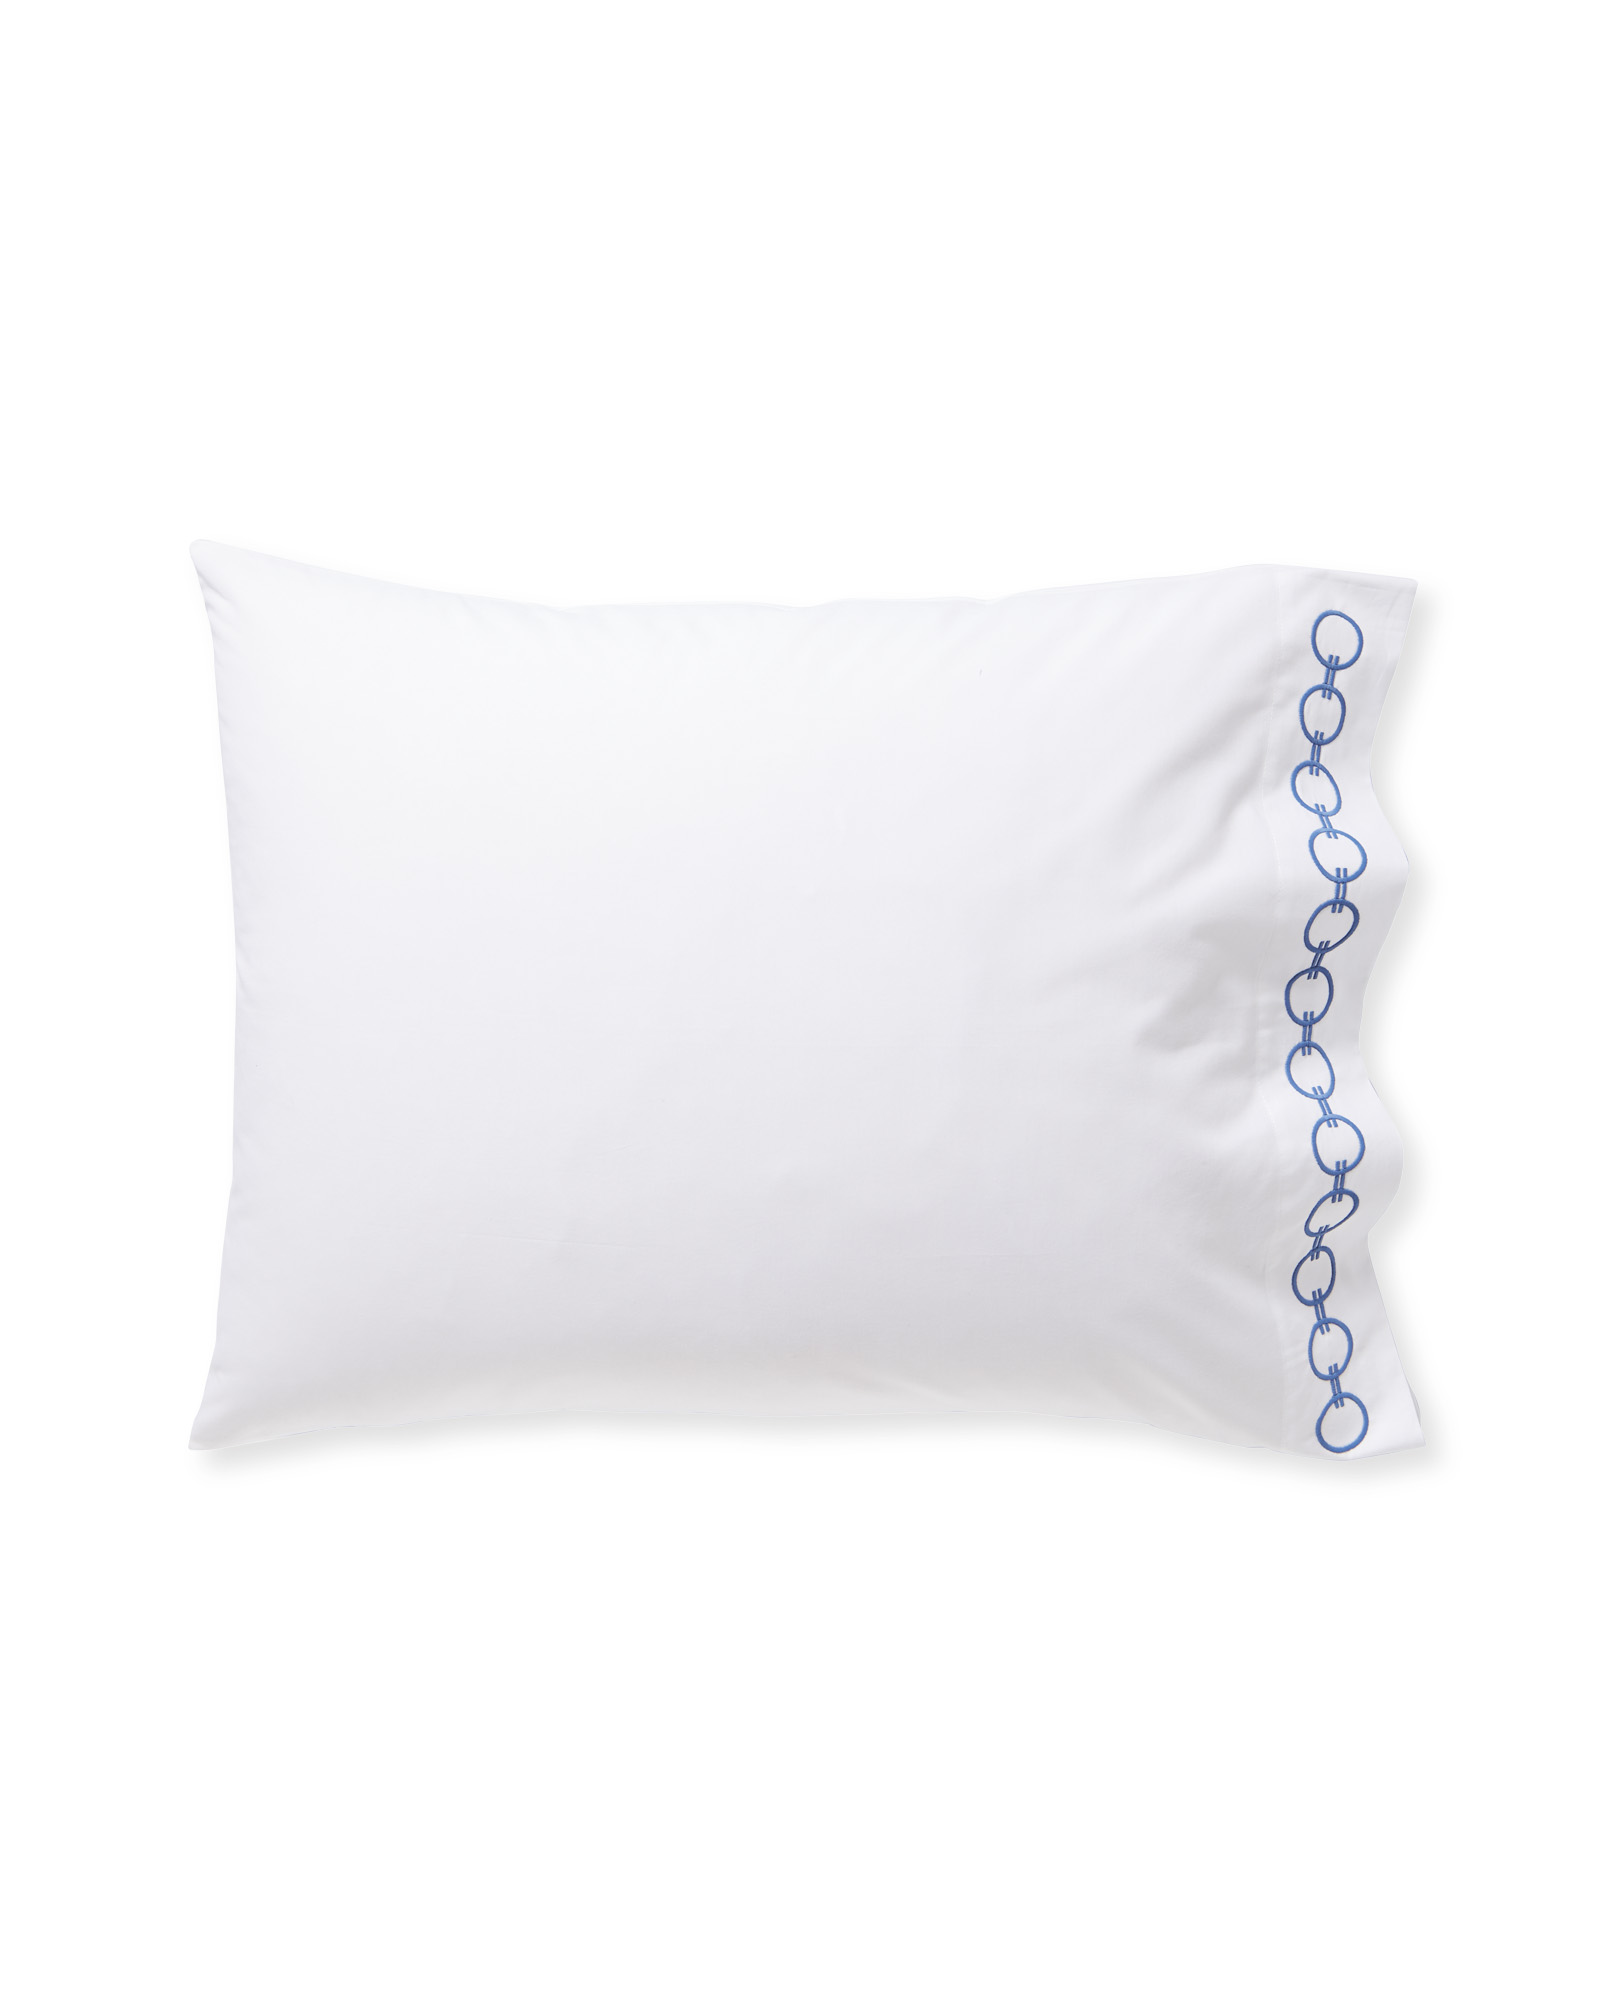 Bel Air Pillowcases (Extra Set of 2), French Blue